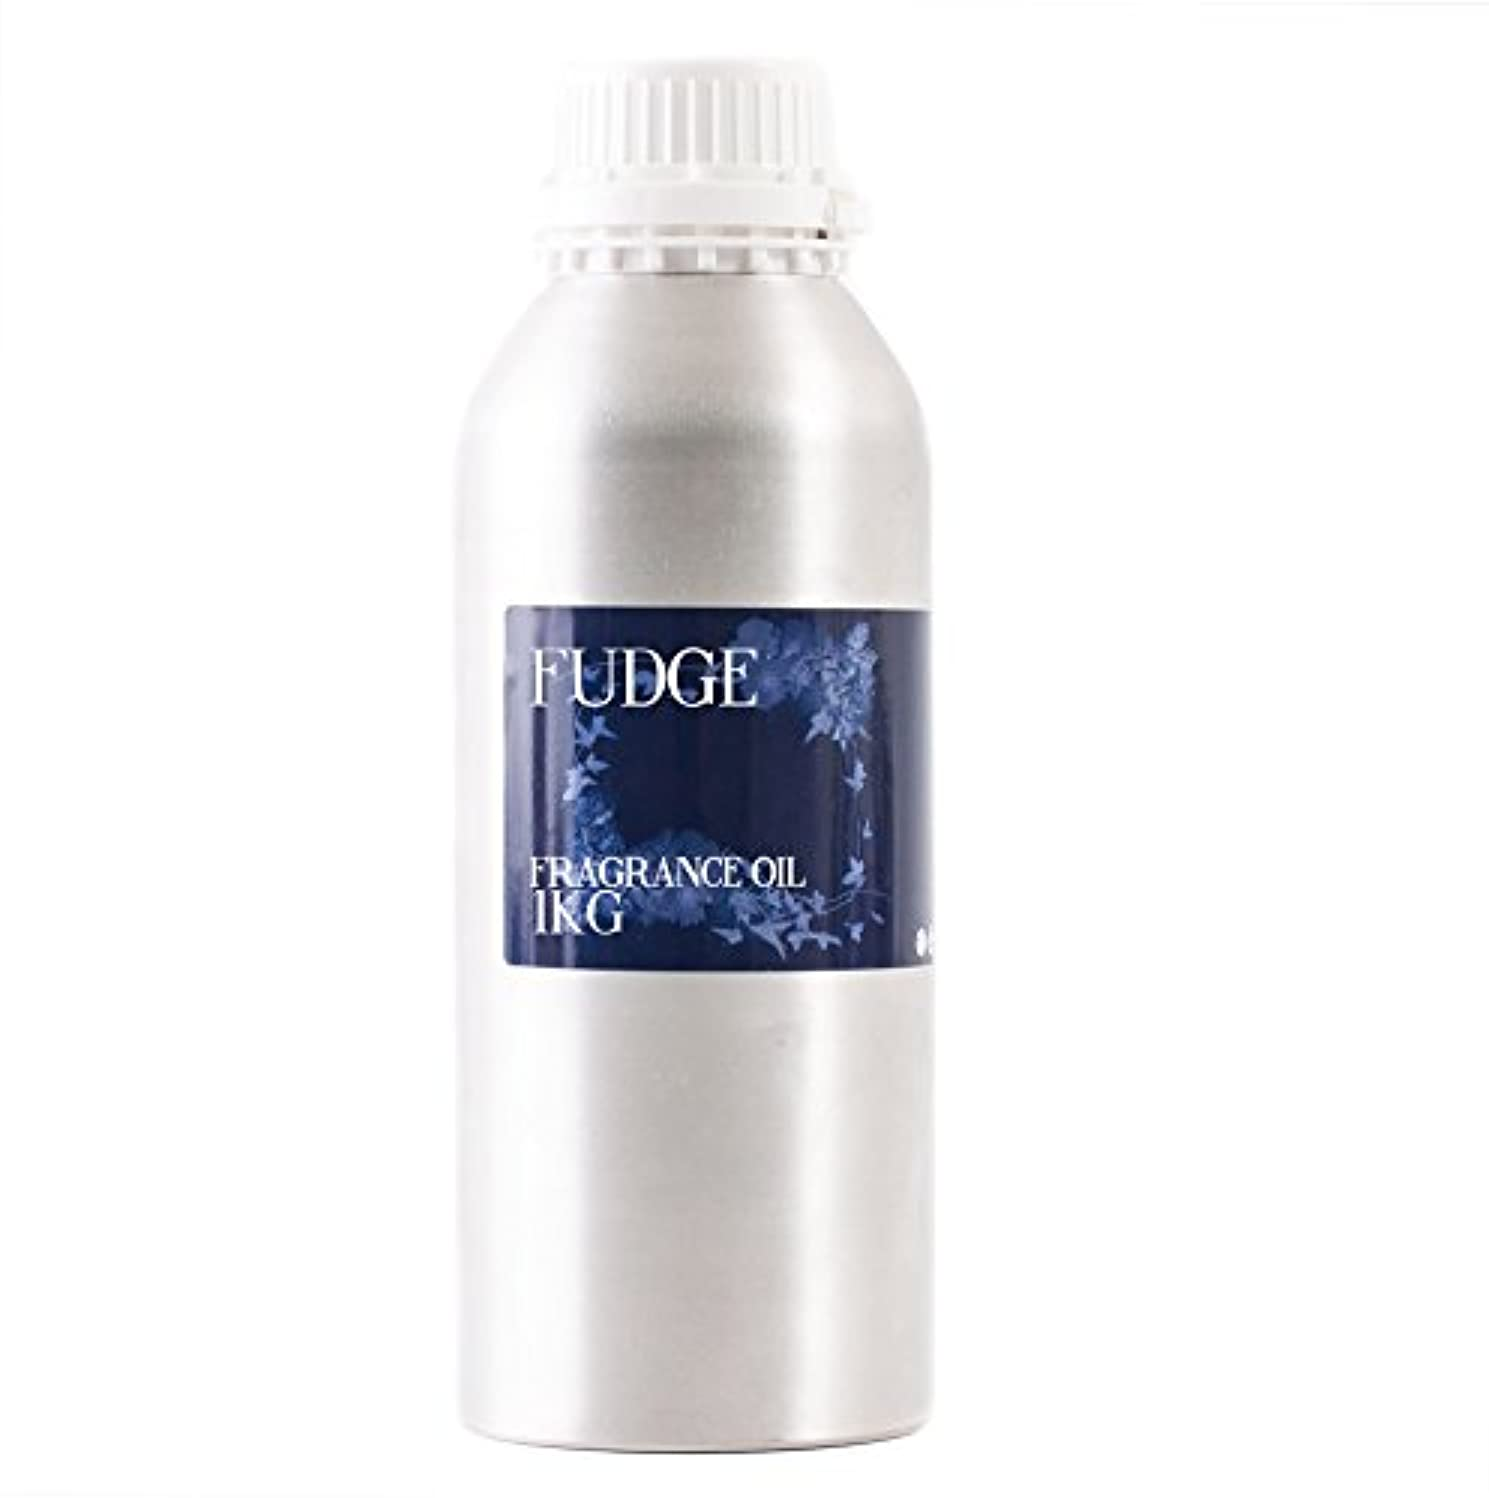 位置する尽きる窓を洗うMystic Moments | Fudge Fragrance Oil - 1Kg